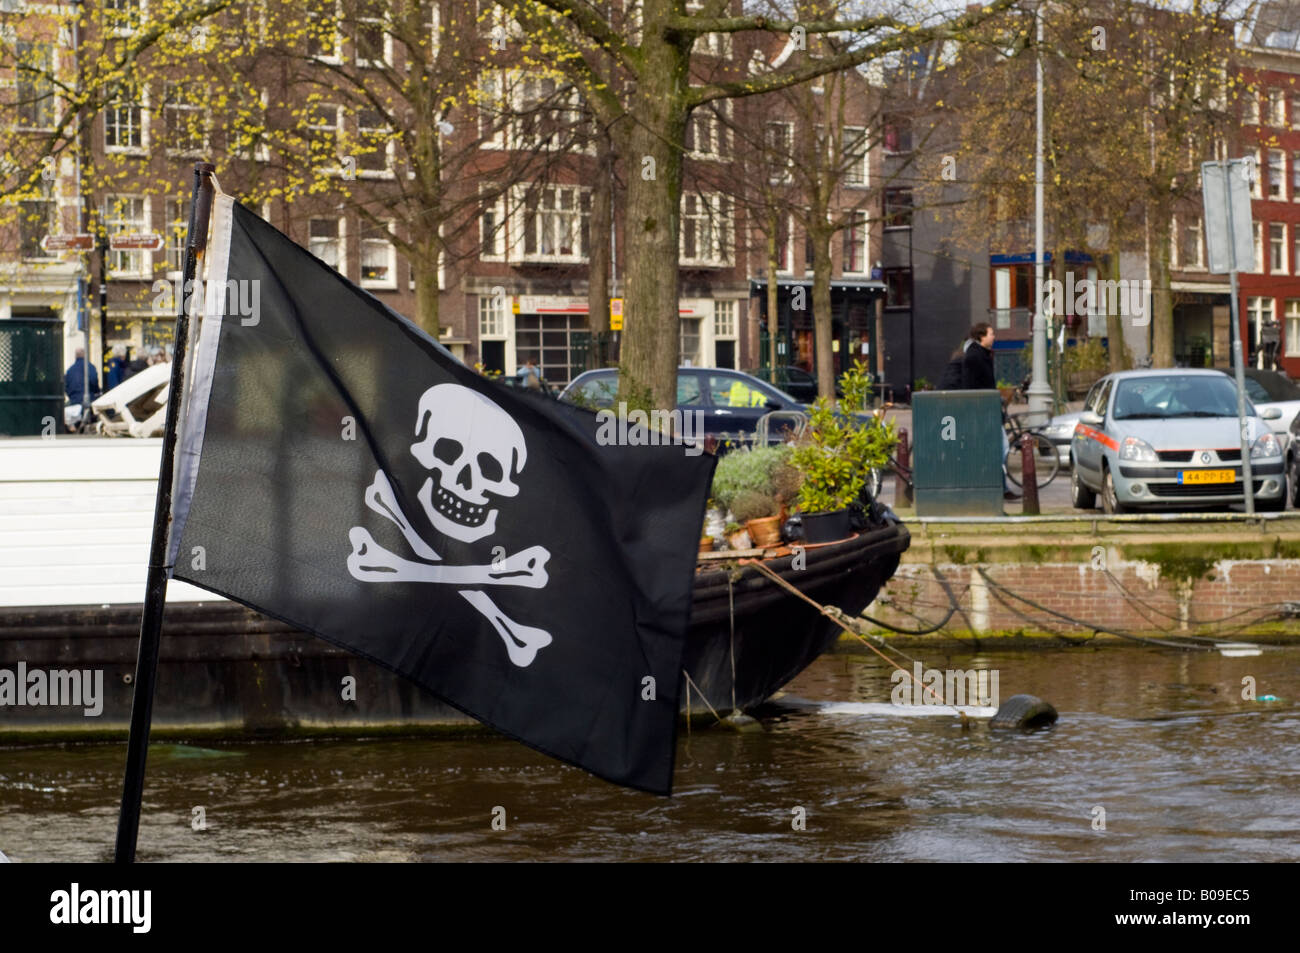 Amsterdam, Skull and Crossbones or jolly roger pirate flag on a houseboat on Prinsengracht canal - Stock Image